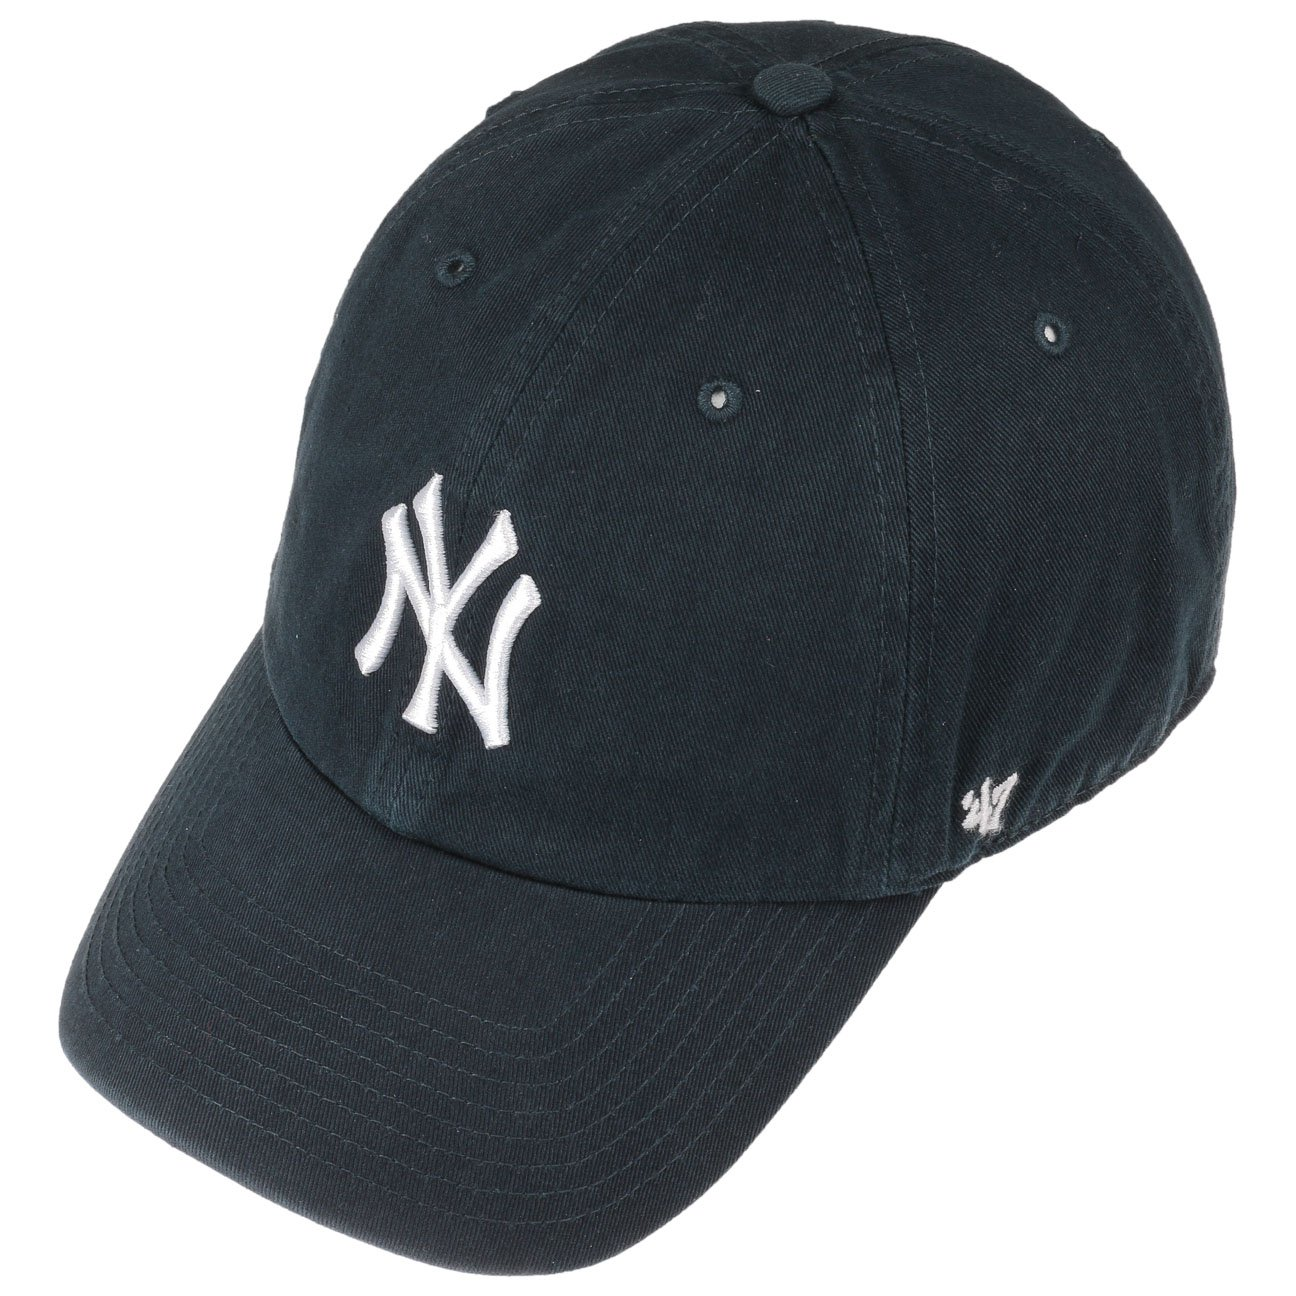 265943aa7 Amazon.com: '47 MLB New York Yankees Brand Clean Up Adjustable Cap, One  Size, Black: Clothing